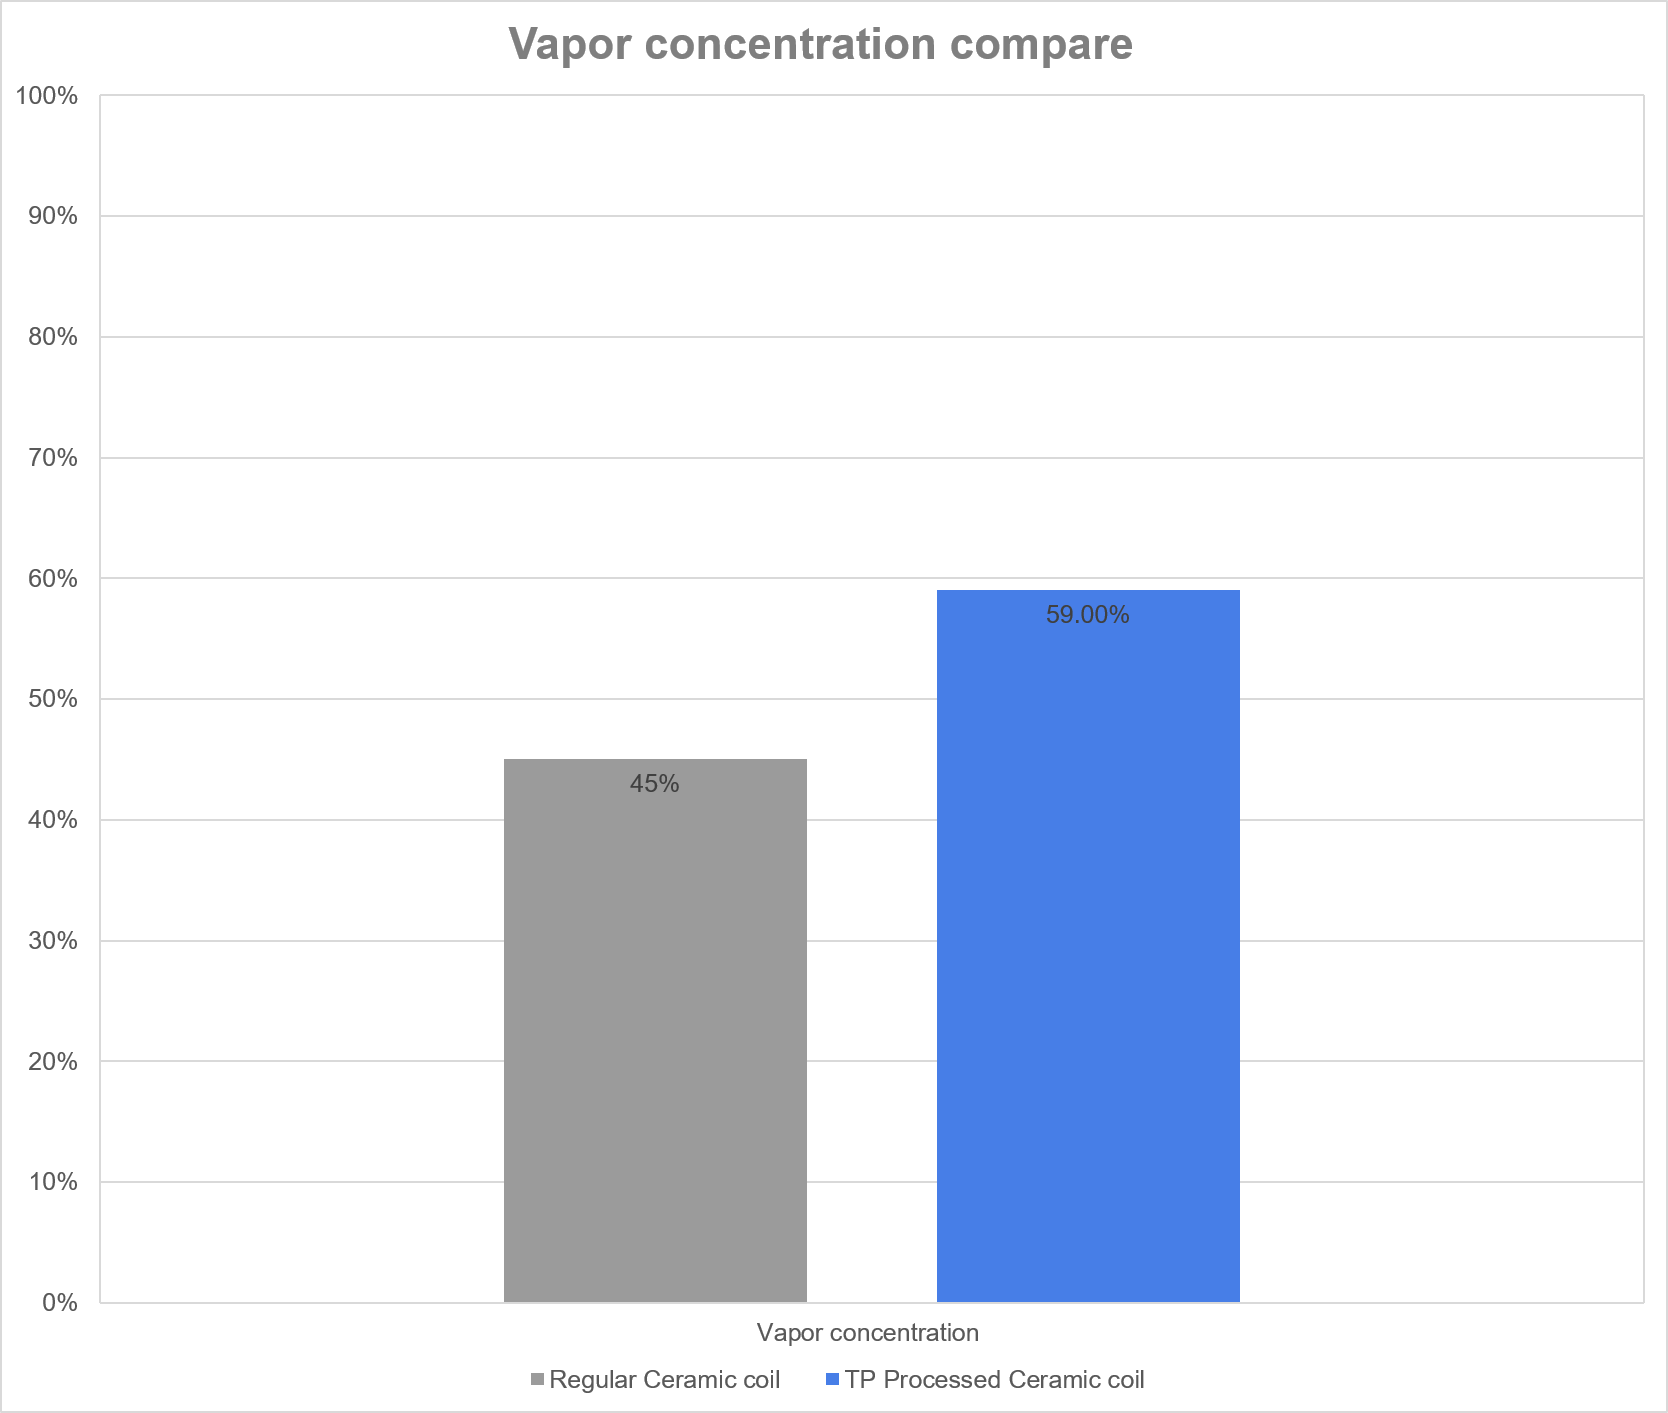 Vapor concentration compare